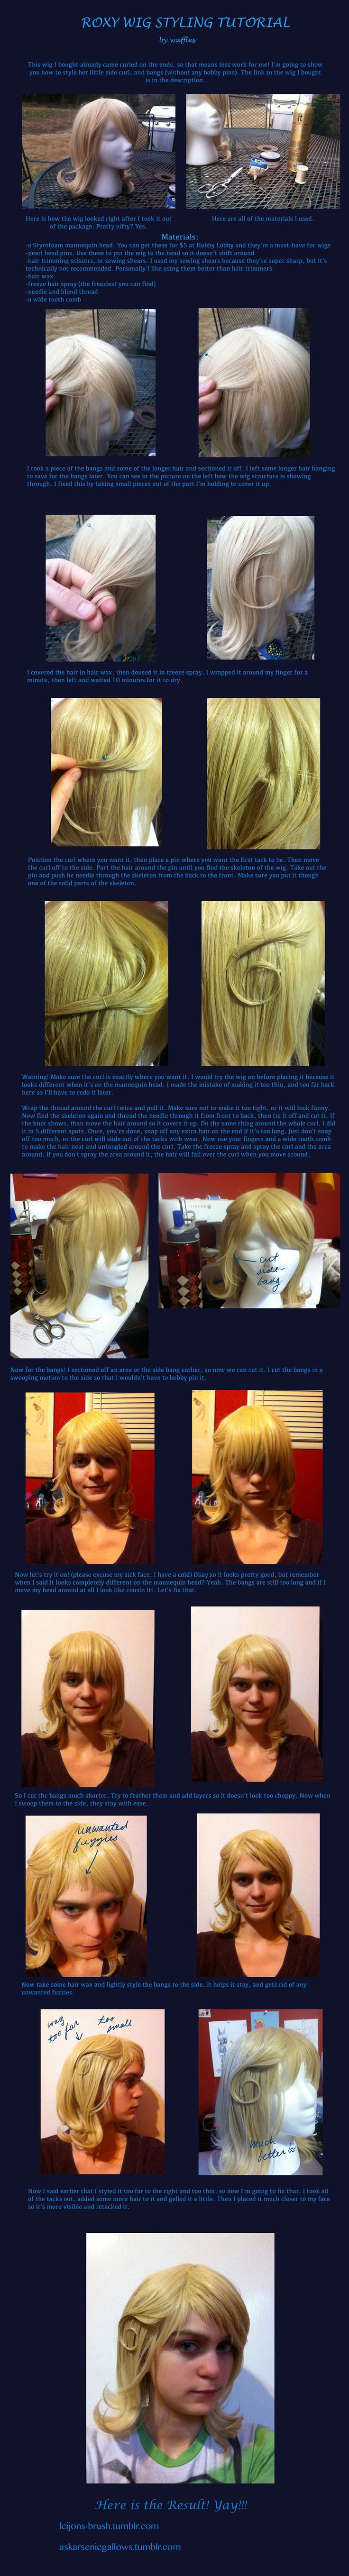 Roxy Wig Styling Tutorial by ~Leijons-brush on deviantART